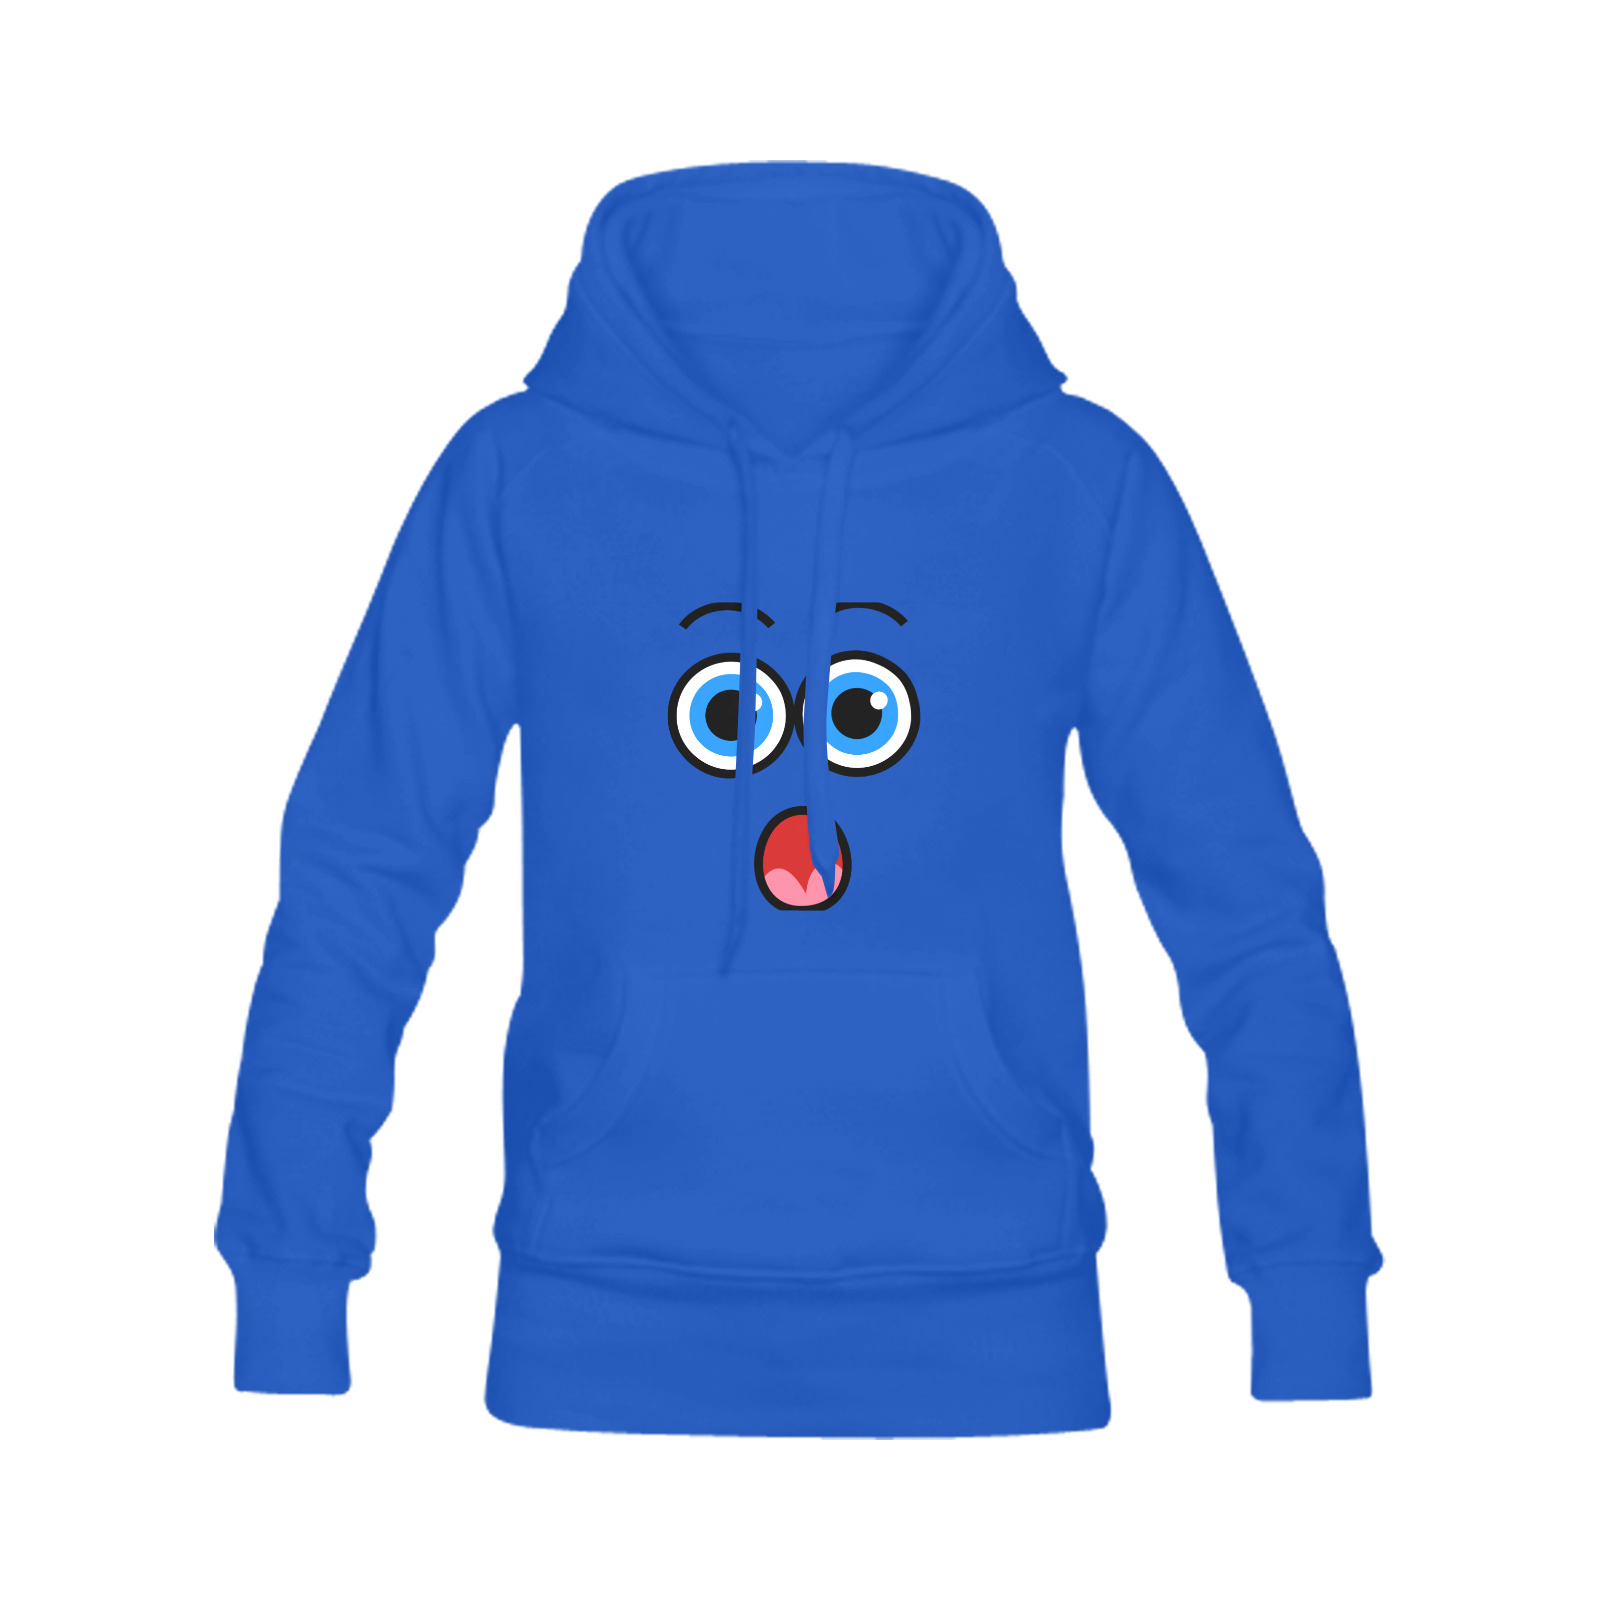 Funny Comic Cartoon Expressive Shocked Face Men's Classic Hoodie (Remake) (Model H10)